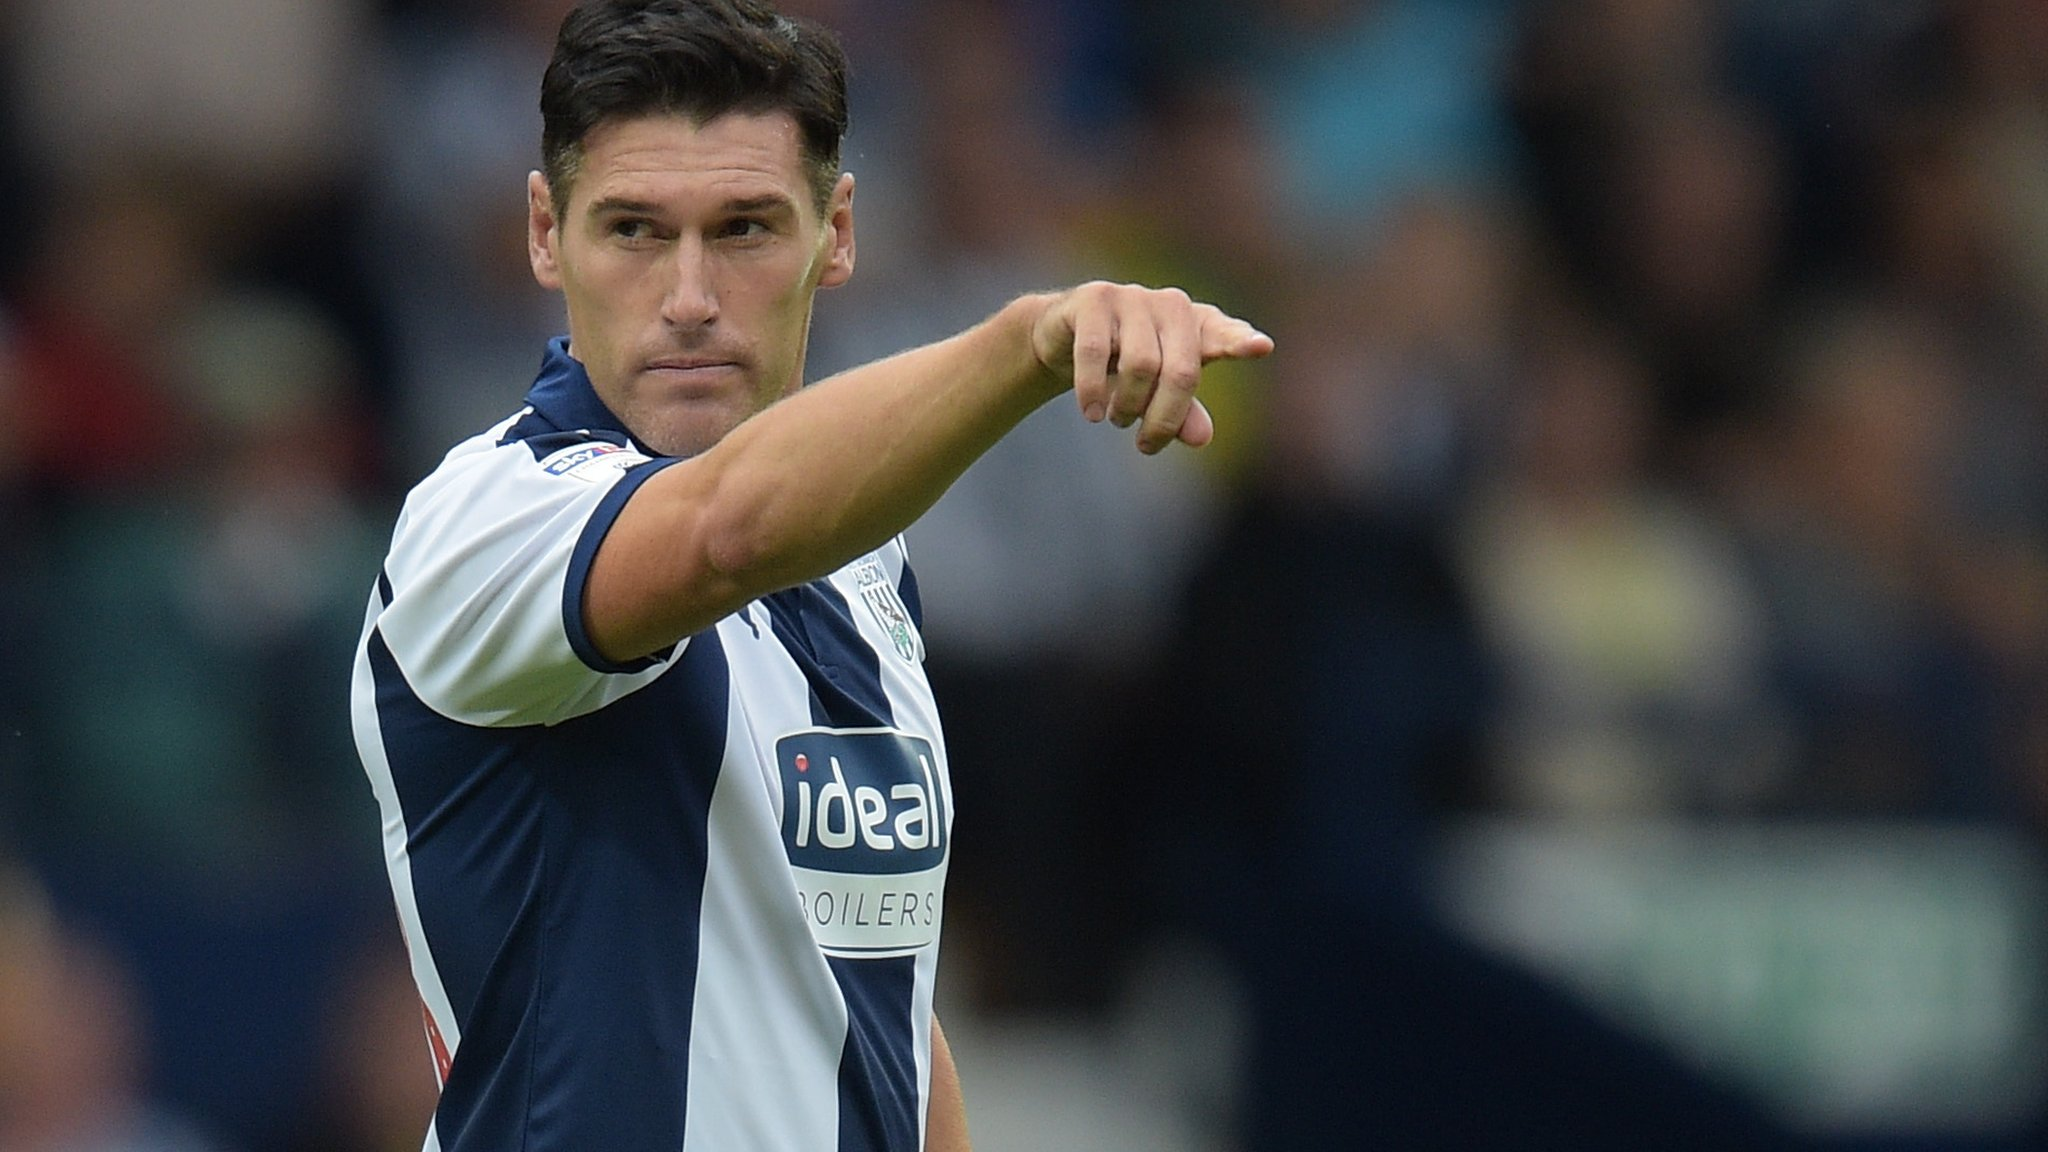 Barry plays, aged 37, for beaten West Brom U21s in Checkatrade Trophy